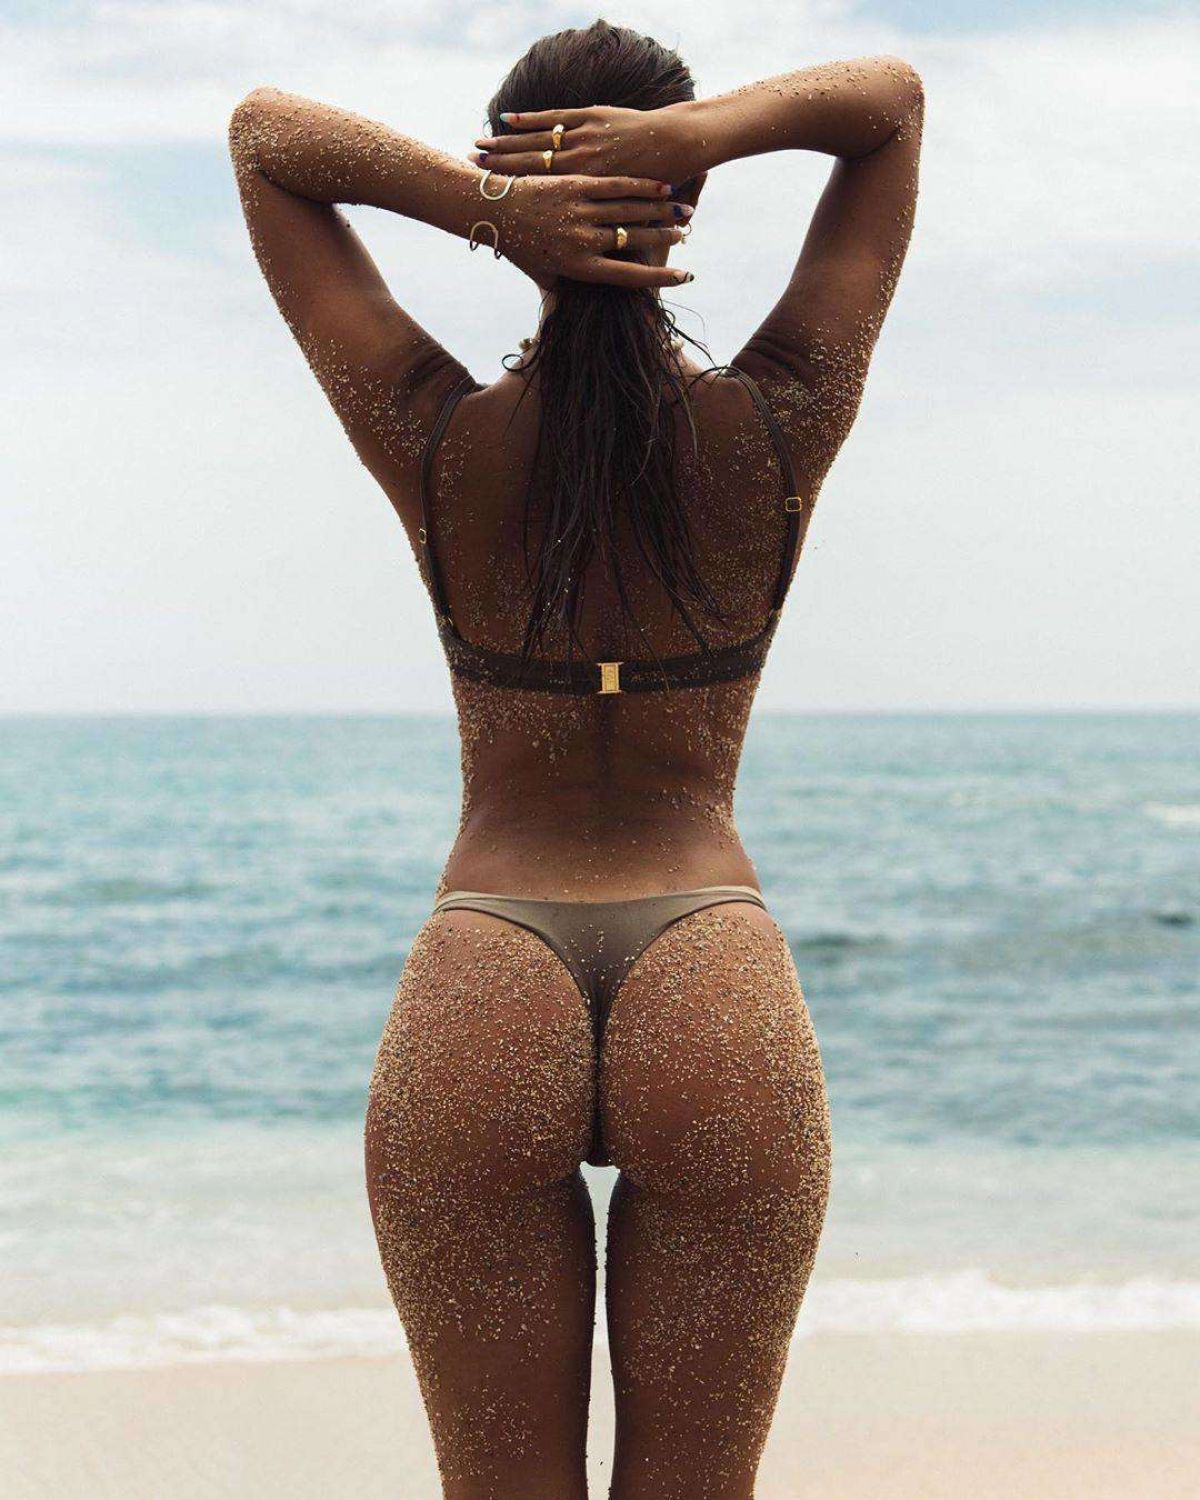 Alana Blanchard leaked nude photos!   The Fappening. 2014